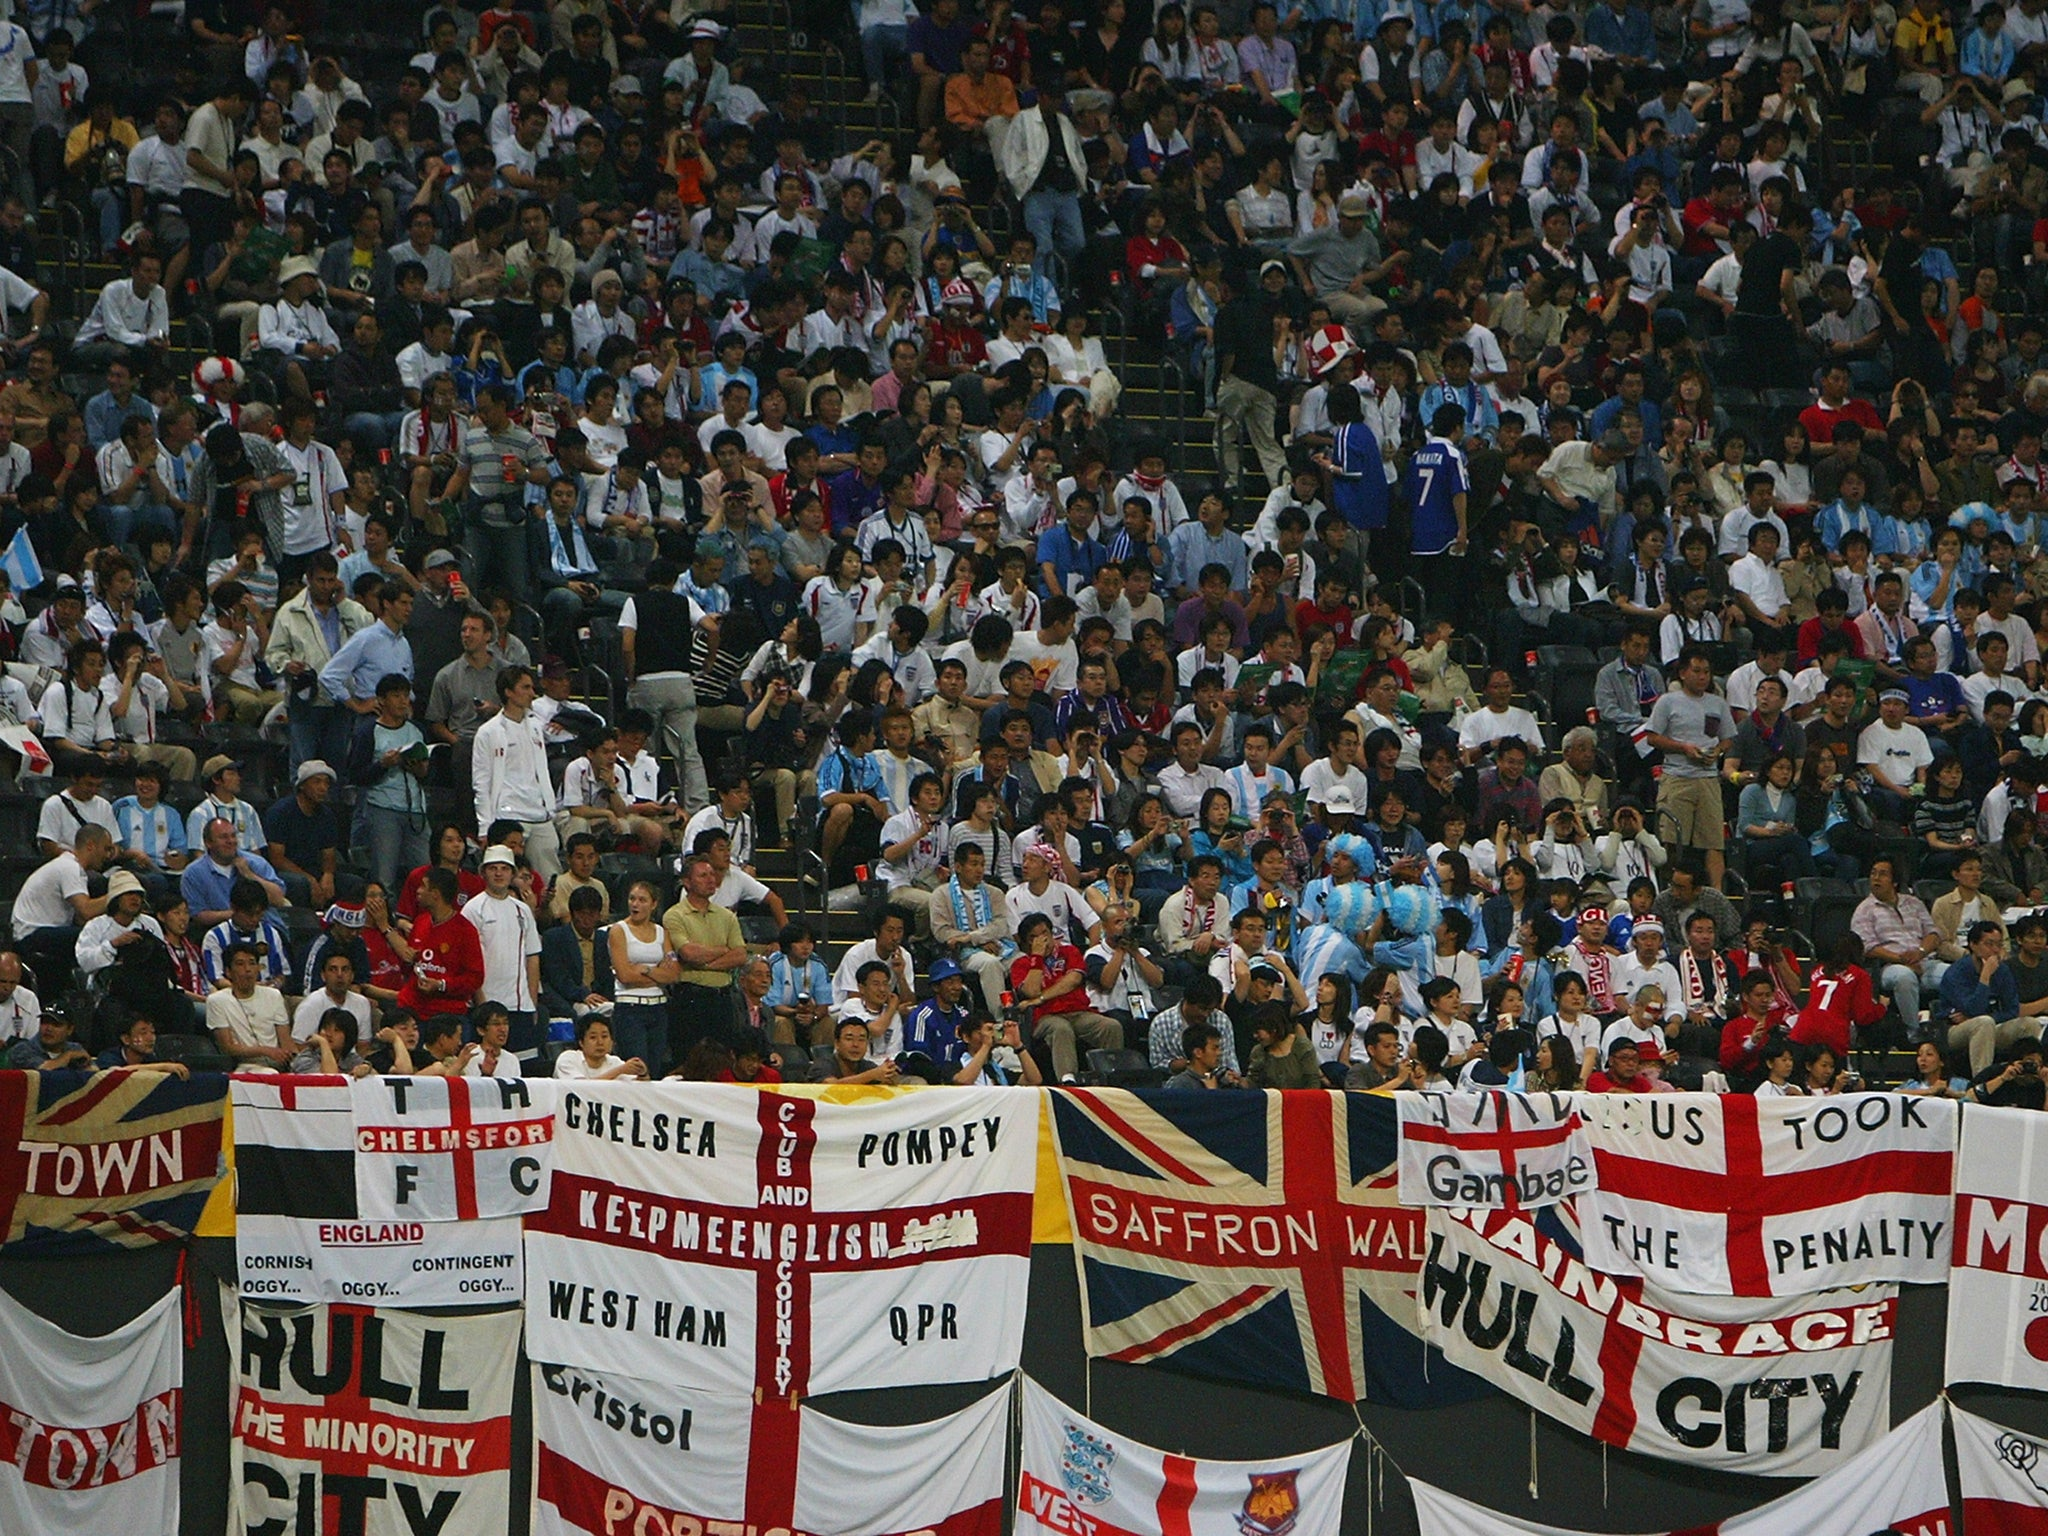 England fans' chants in Germany condemned by Football Supporters' Federation | The Independent